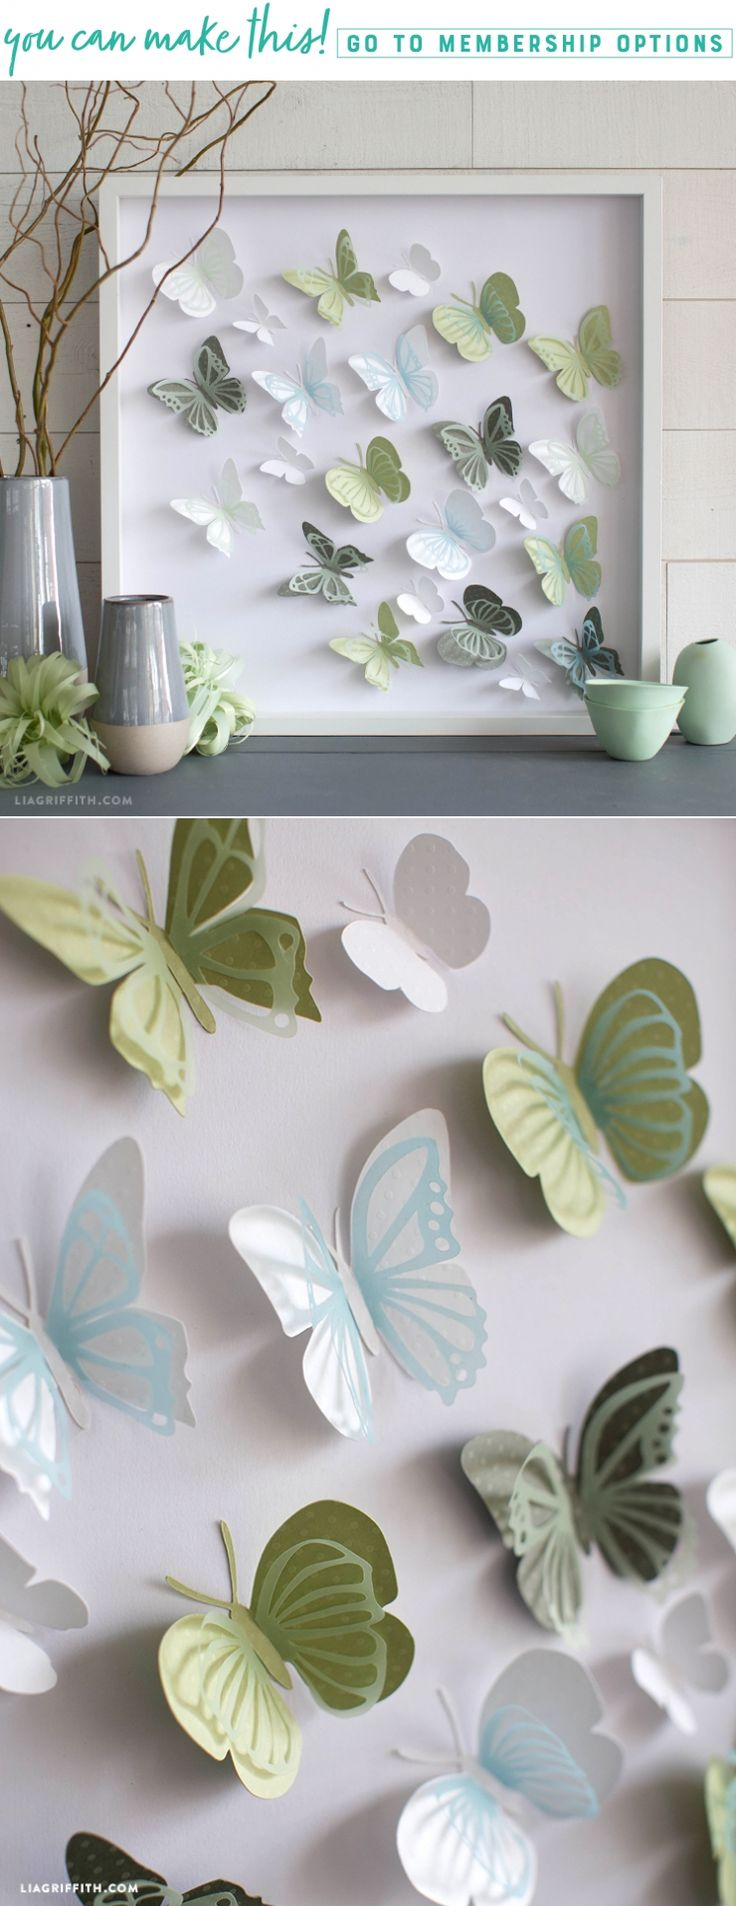 WE'VE HIT 500 SVG FILES! We're releasing thousands of butterflies in celebration. As a special thanks to you we are offering this project as a FREE SVG file download. Download your butterfly SVG and celebrate with us here  https://liagriffith.com/papercut-butterfly-wall-art/ * * * #butterfly #wallart #svg #free #freebie #celebrate #butterflies #happy #change #diy #diycraft #diycrafts #diyproject #diyprojects #diyinspiration #inspiration #svgfiles #5years #5yearsstrong #entrepreneur #blog…